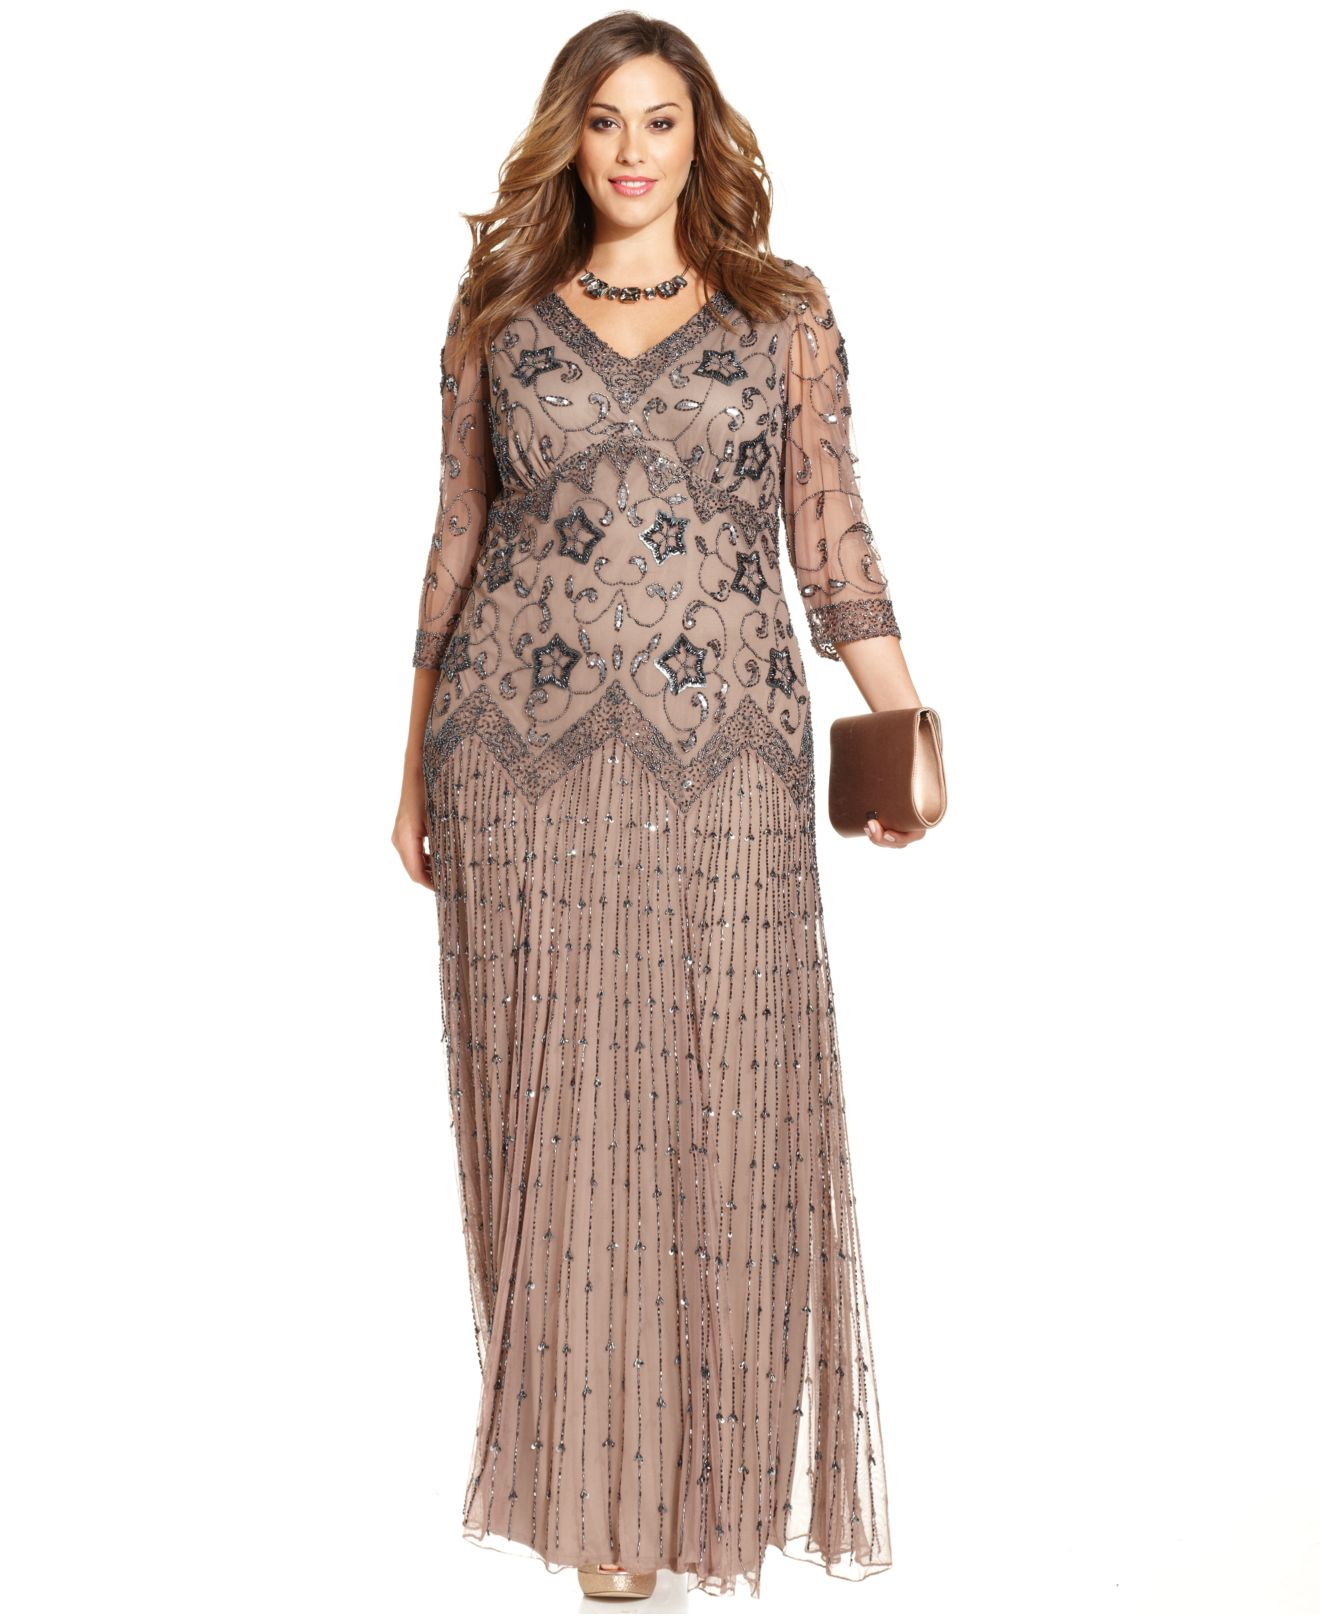 972101d81c0 Lyst - Pisarro Nights Plus Size Three-Quarter-Sleeve Beaded Gown in ...